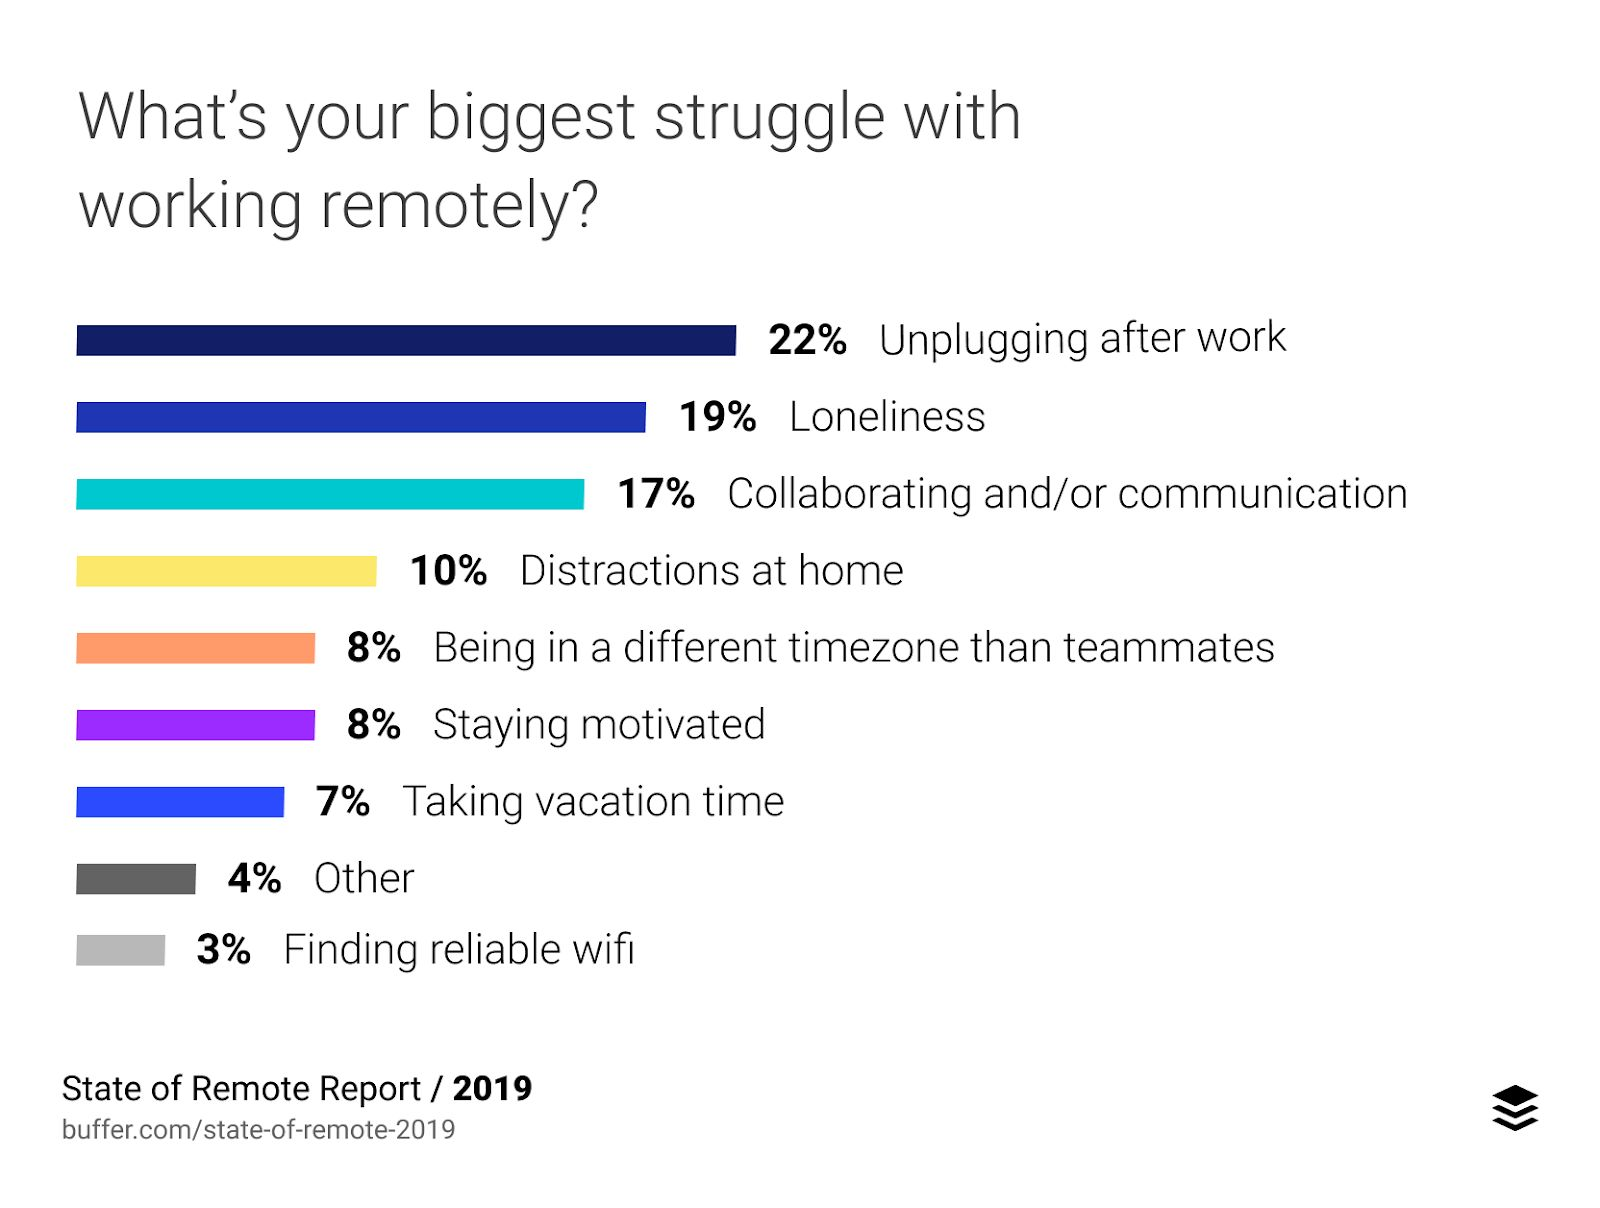 Top challenges for remote teams